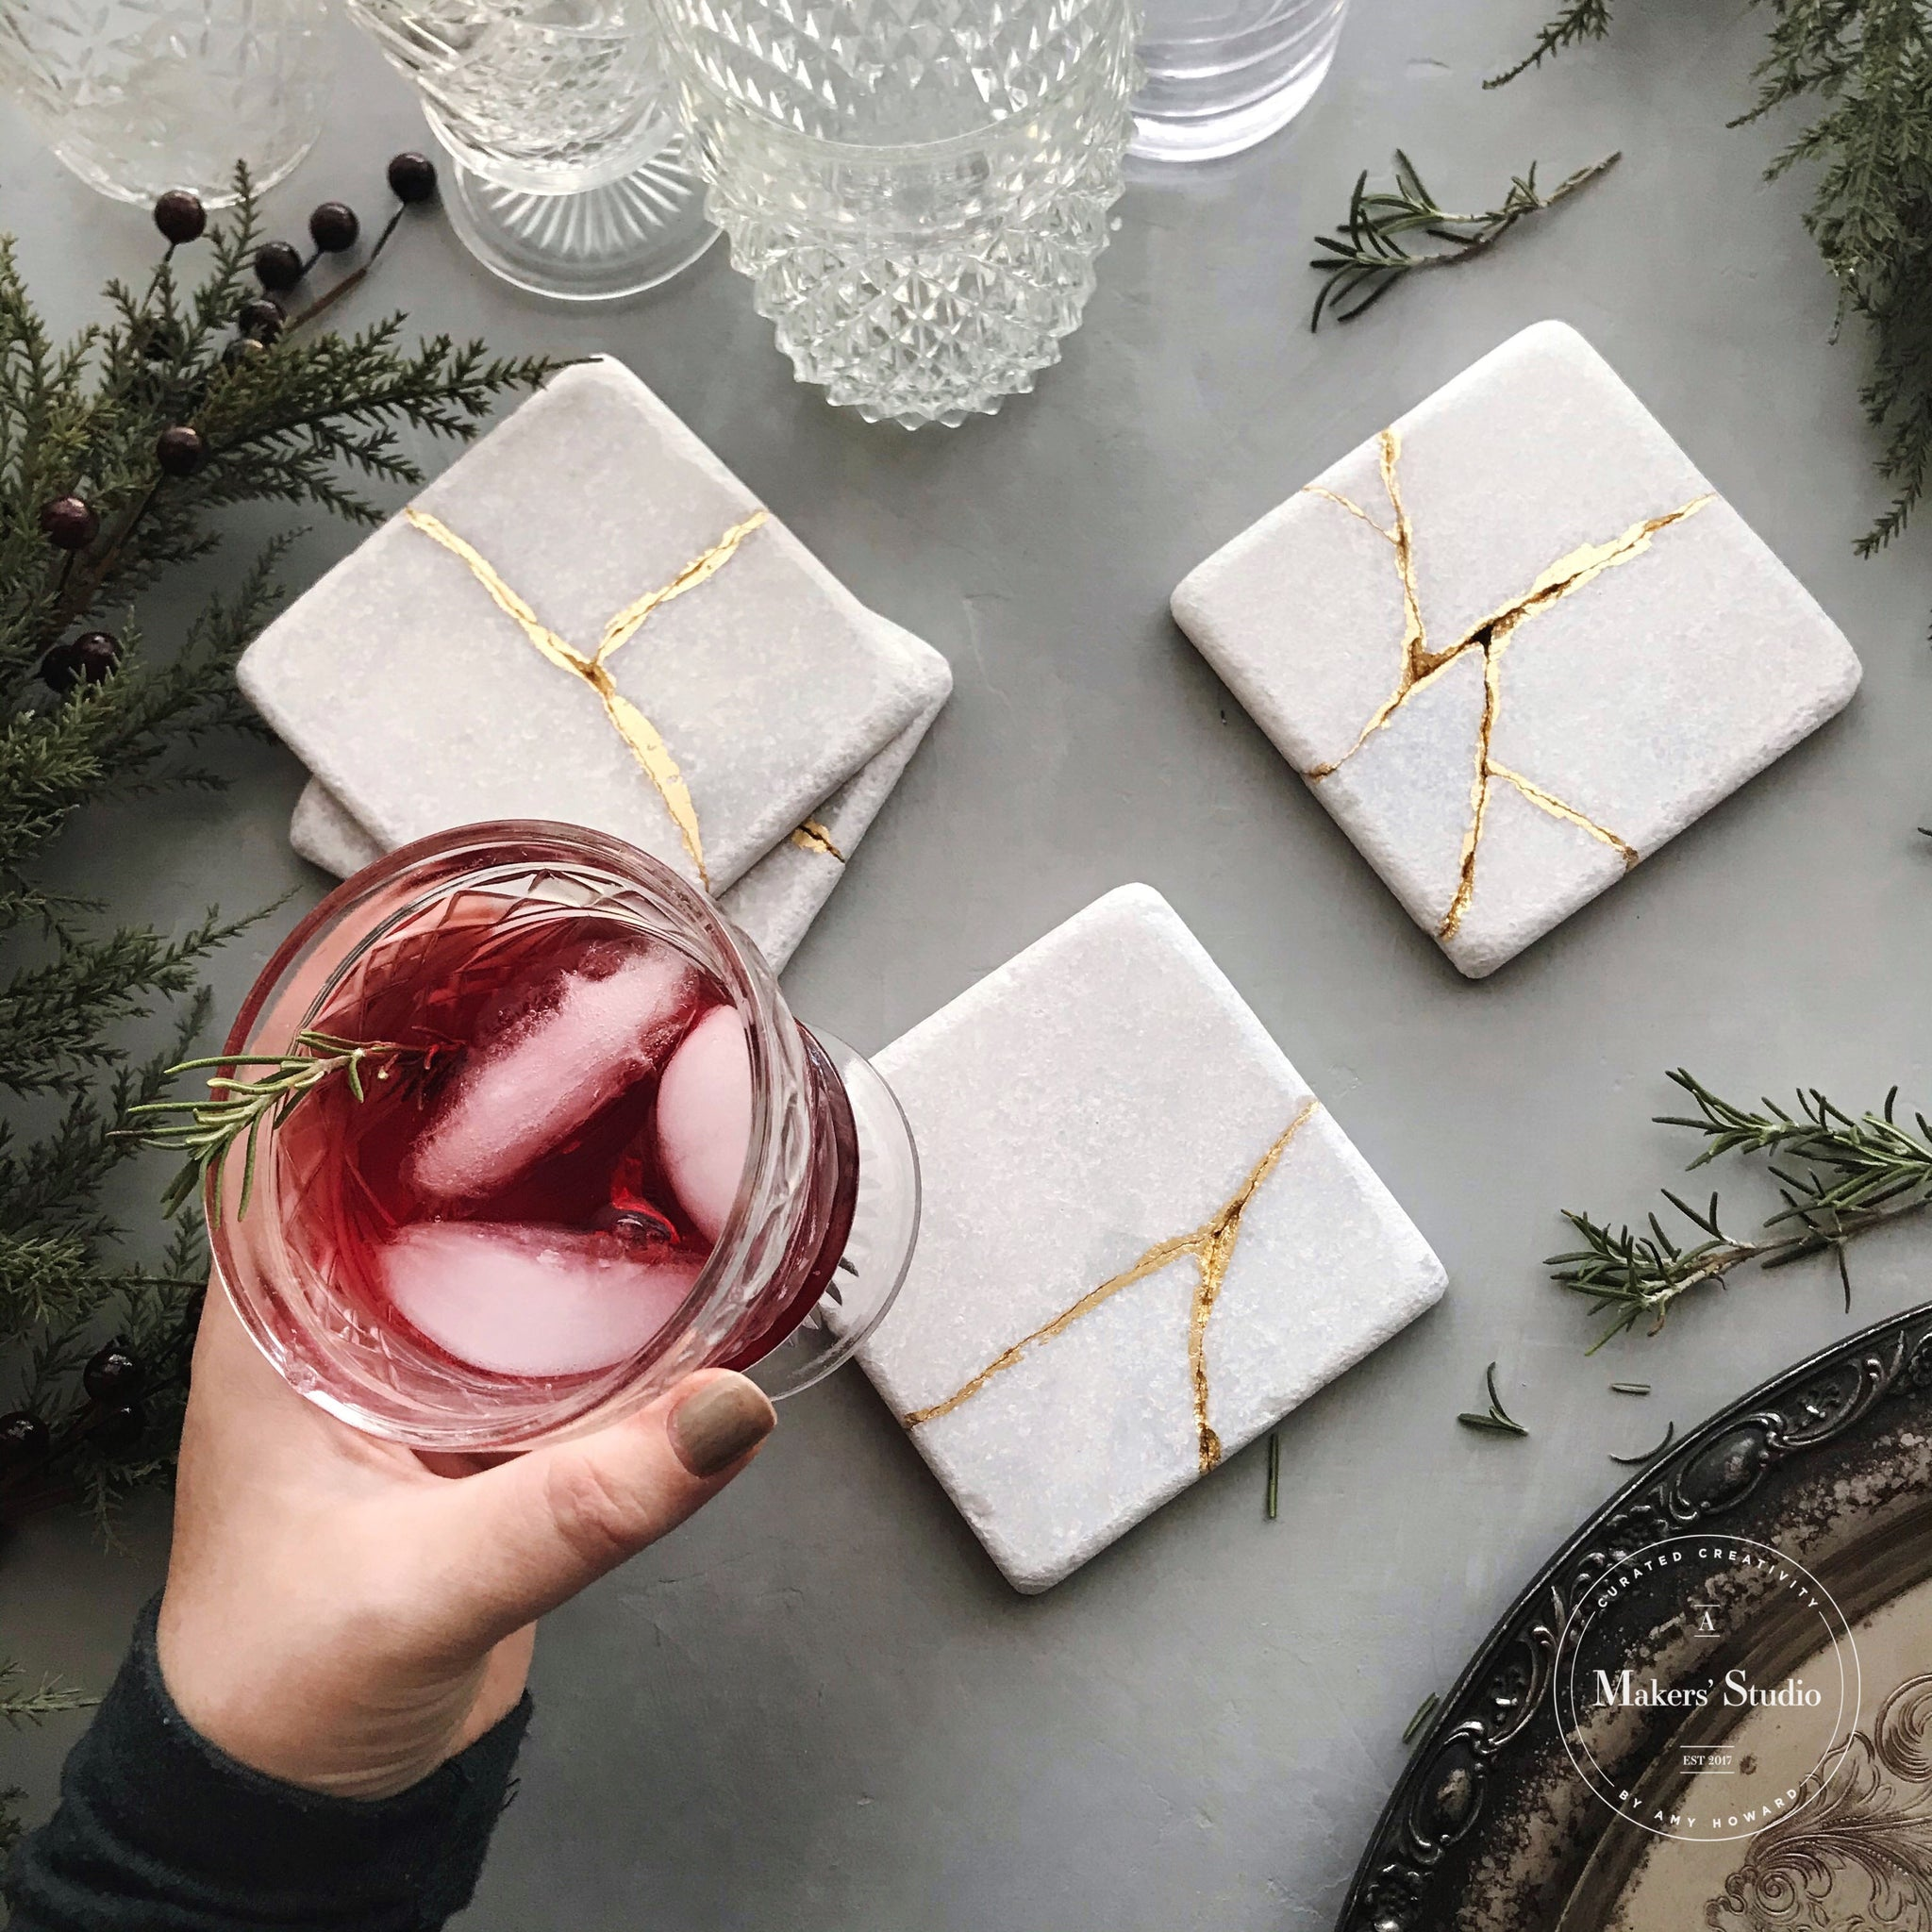 How to Make Kintsugi Coasters